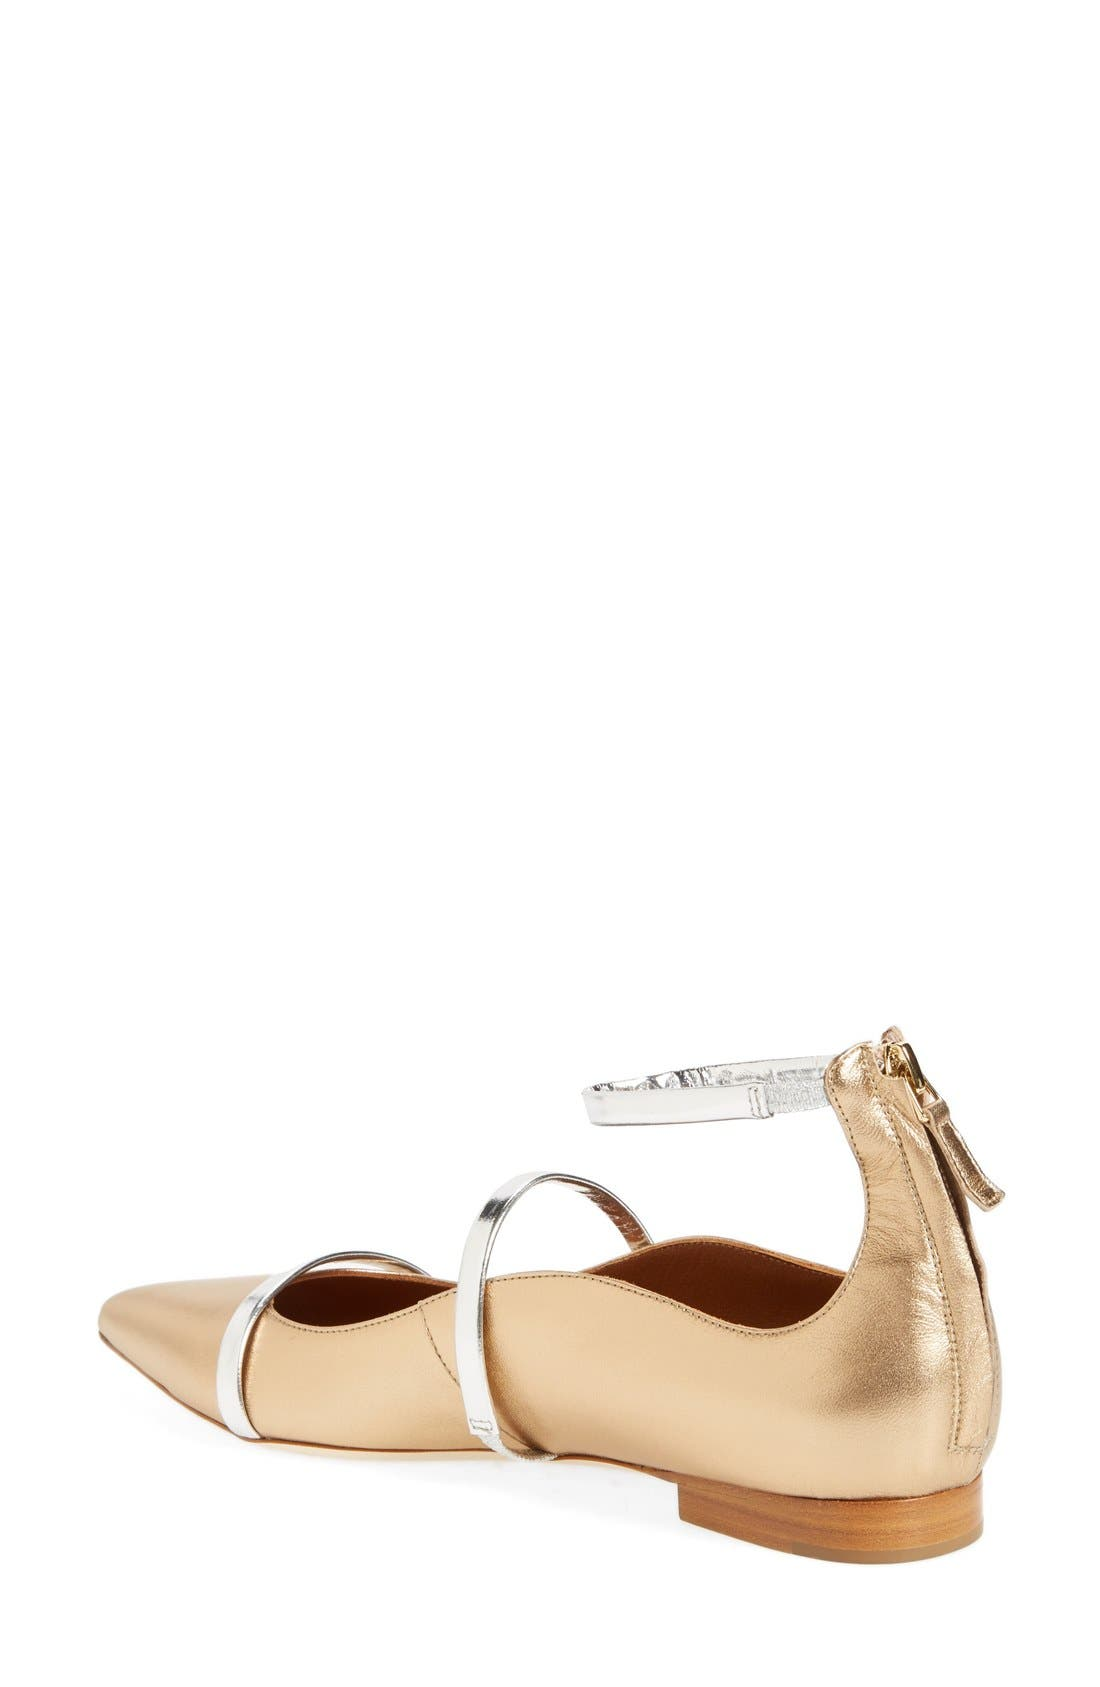 'Robyn' Ankle Strap Flat,                             Alternate thumbnail 2, color,                             710